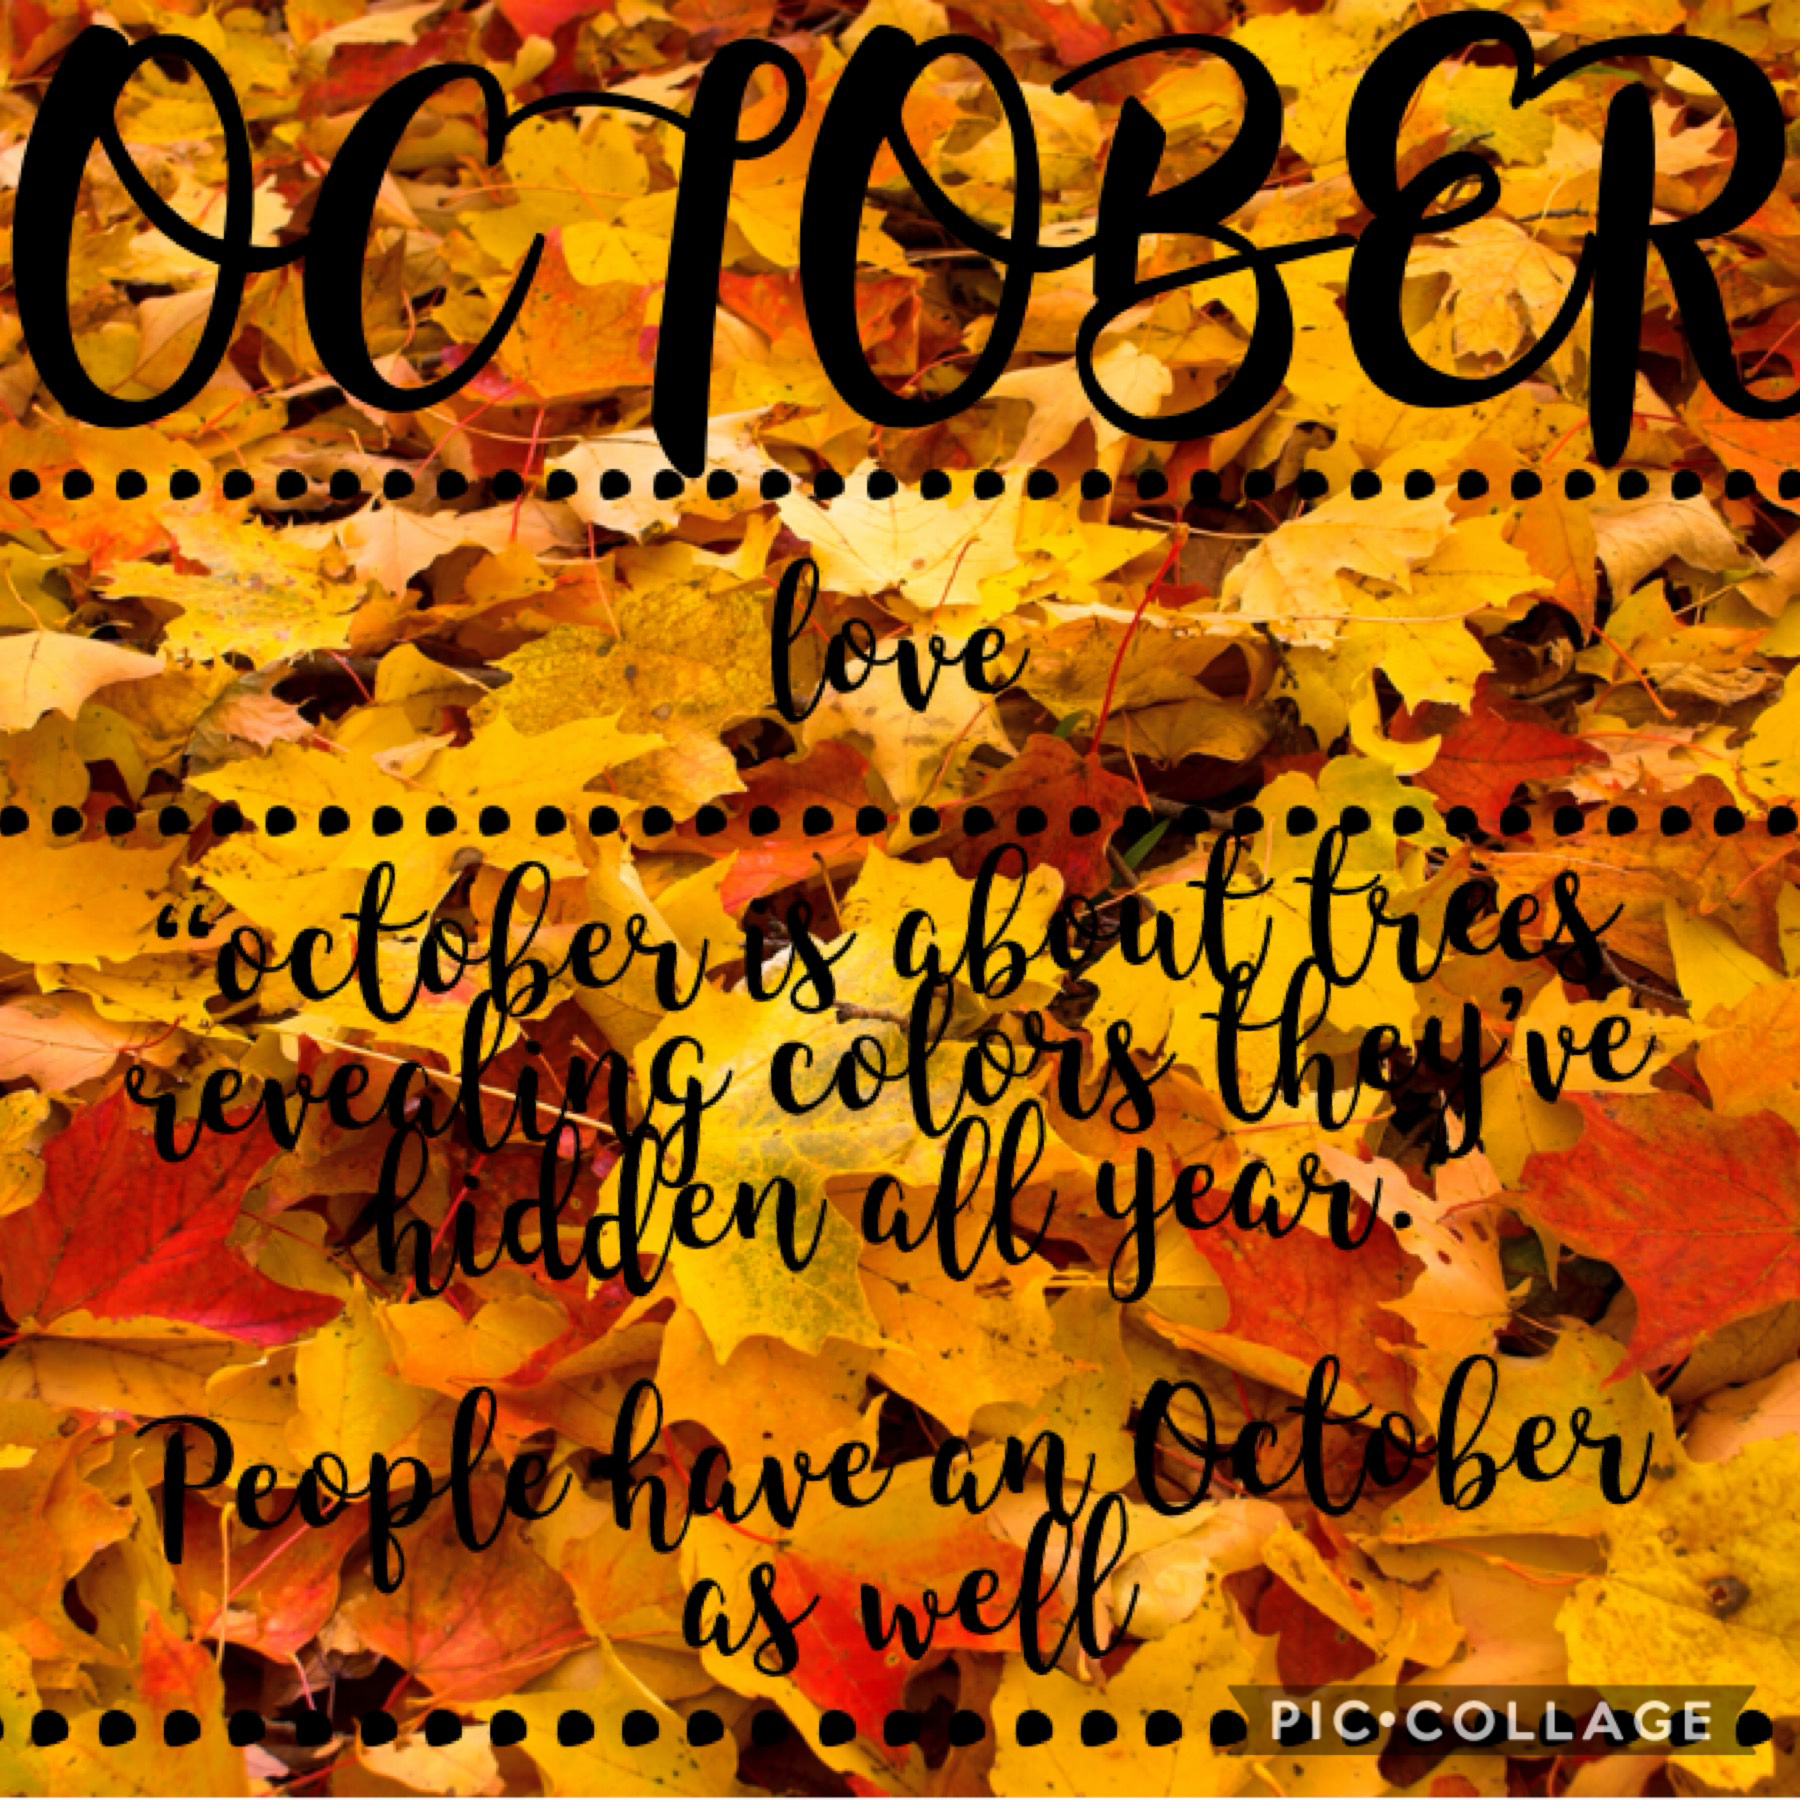 It's October!! I hope you all have an amazing month!❤️